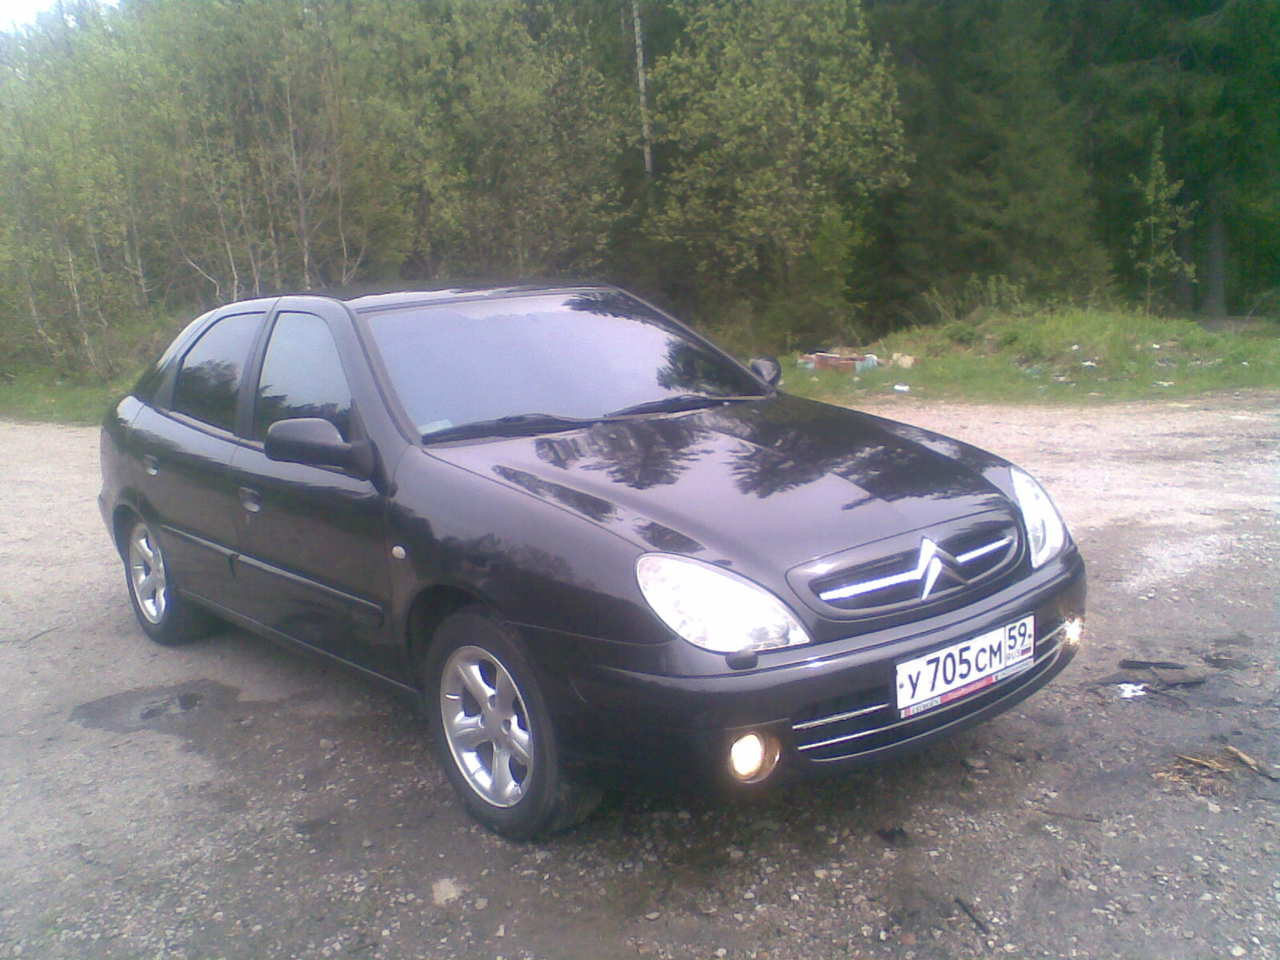 used 2003 citroen xsara photos 1600cc gasoline ff. Black Bedroom Furniture Sets. Home Design Ideas